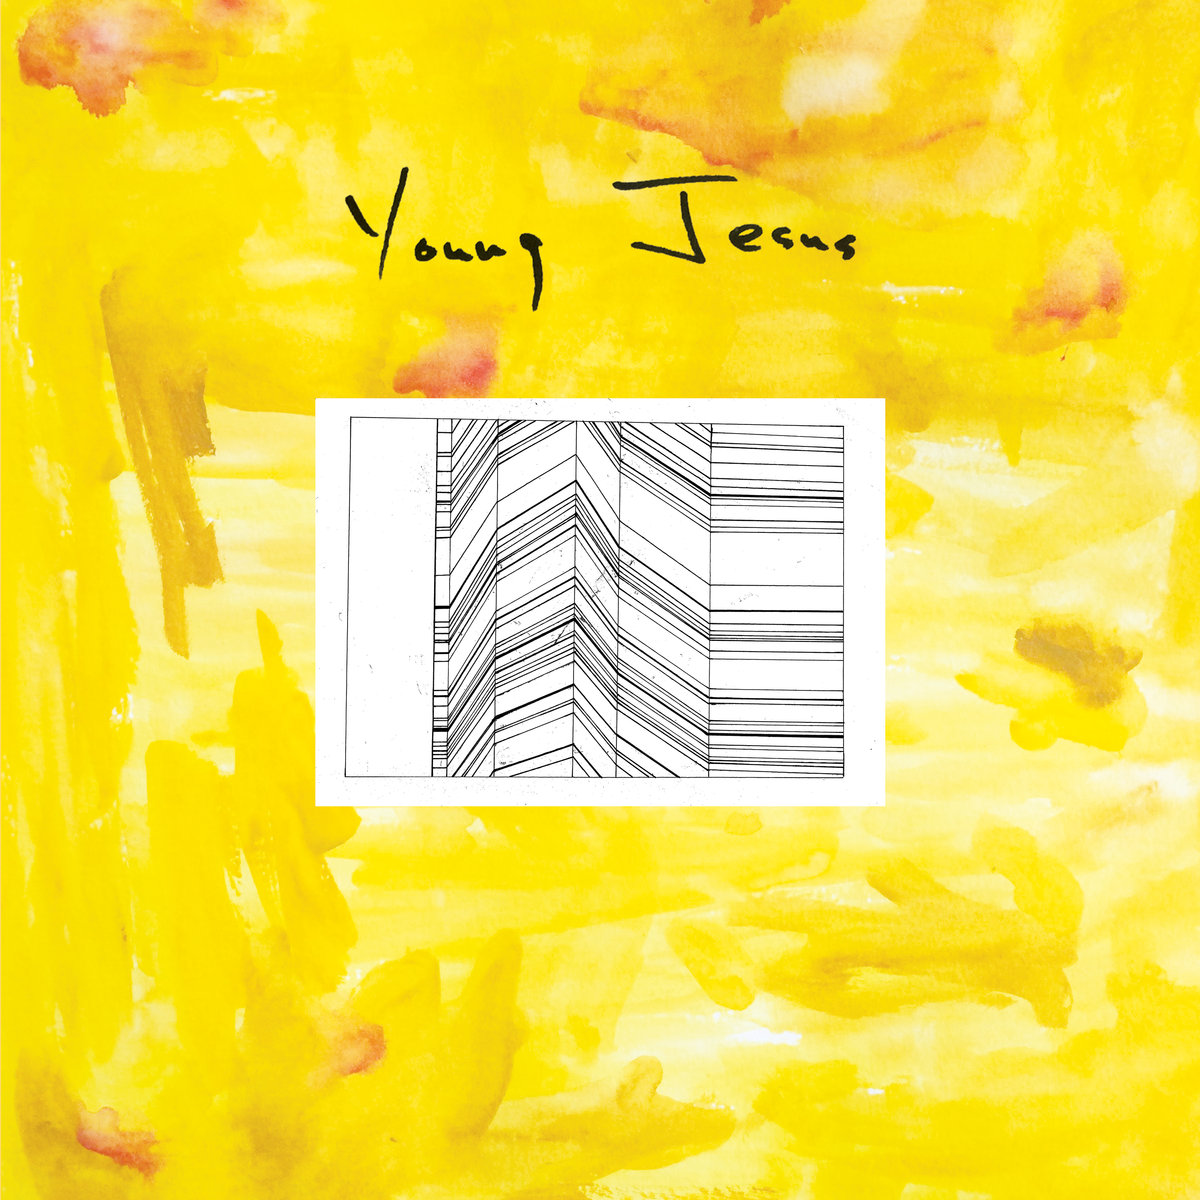 The Whole Thing Is Just There young jesus art